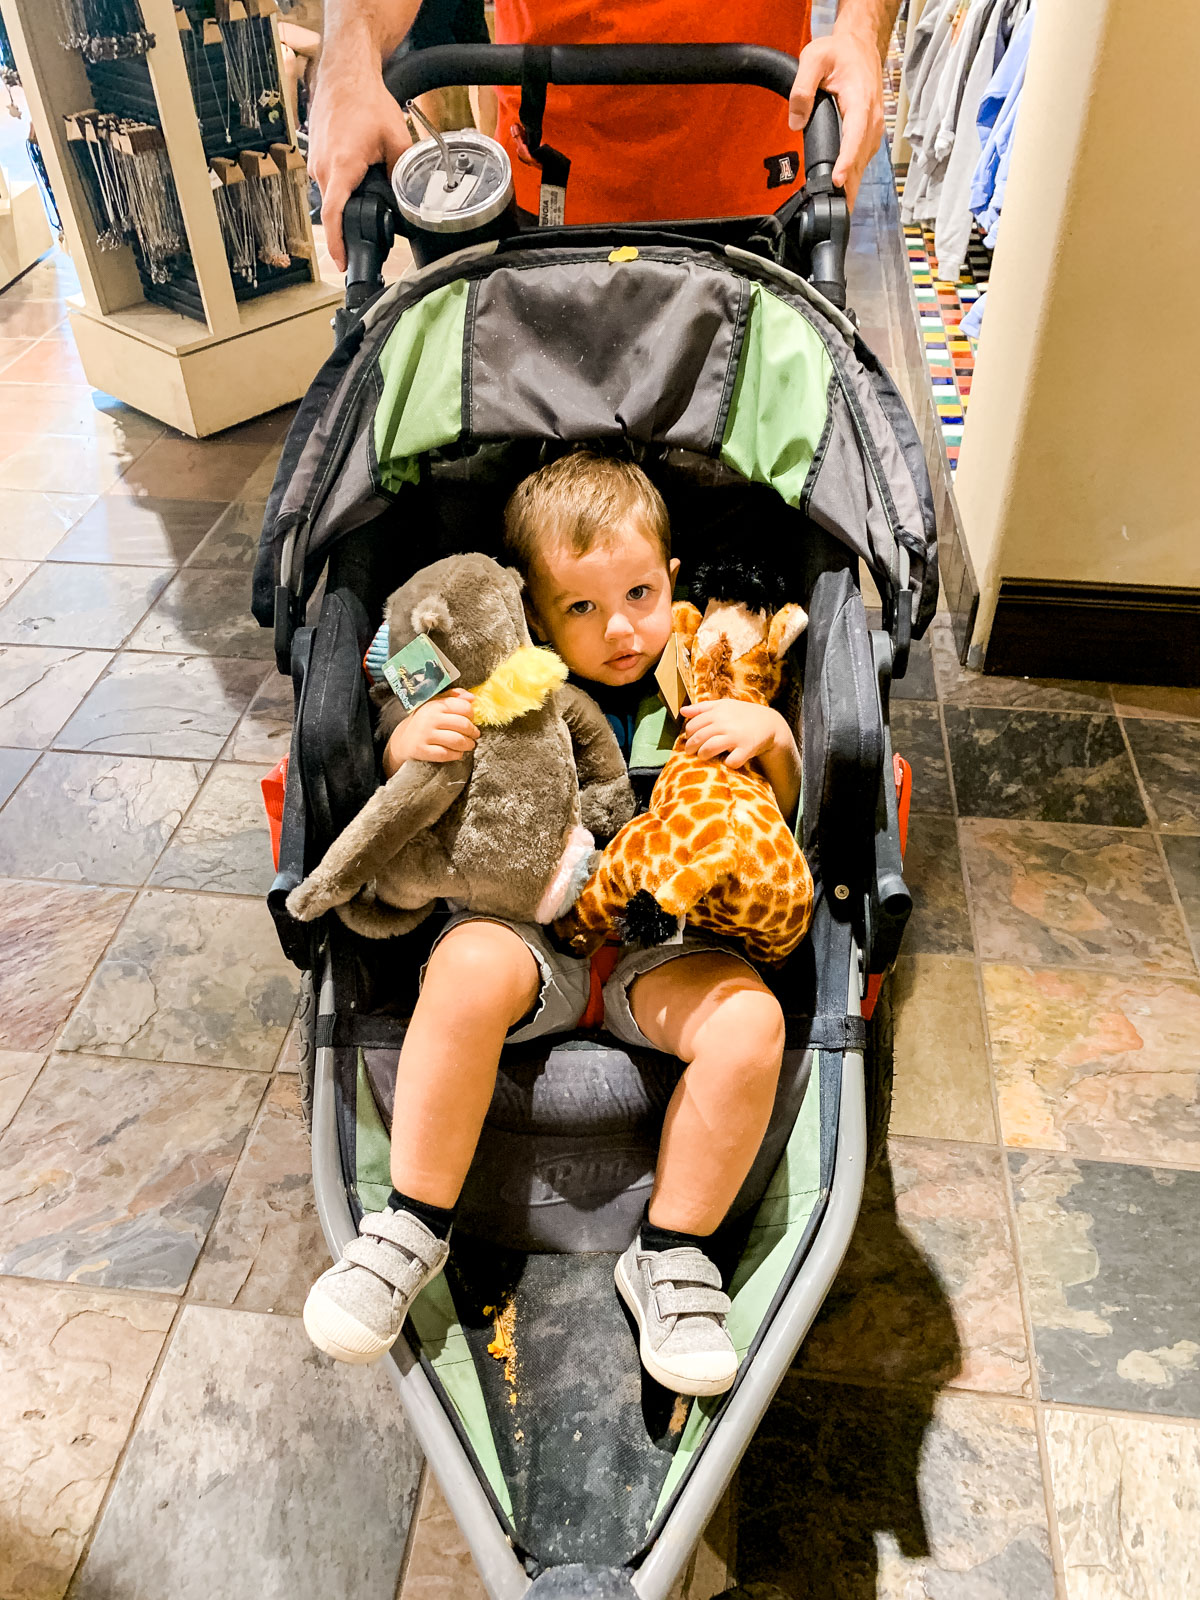 KJ with stuffed animals from gift shop